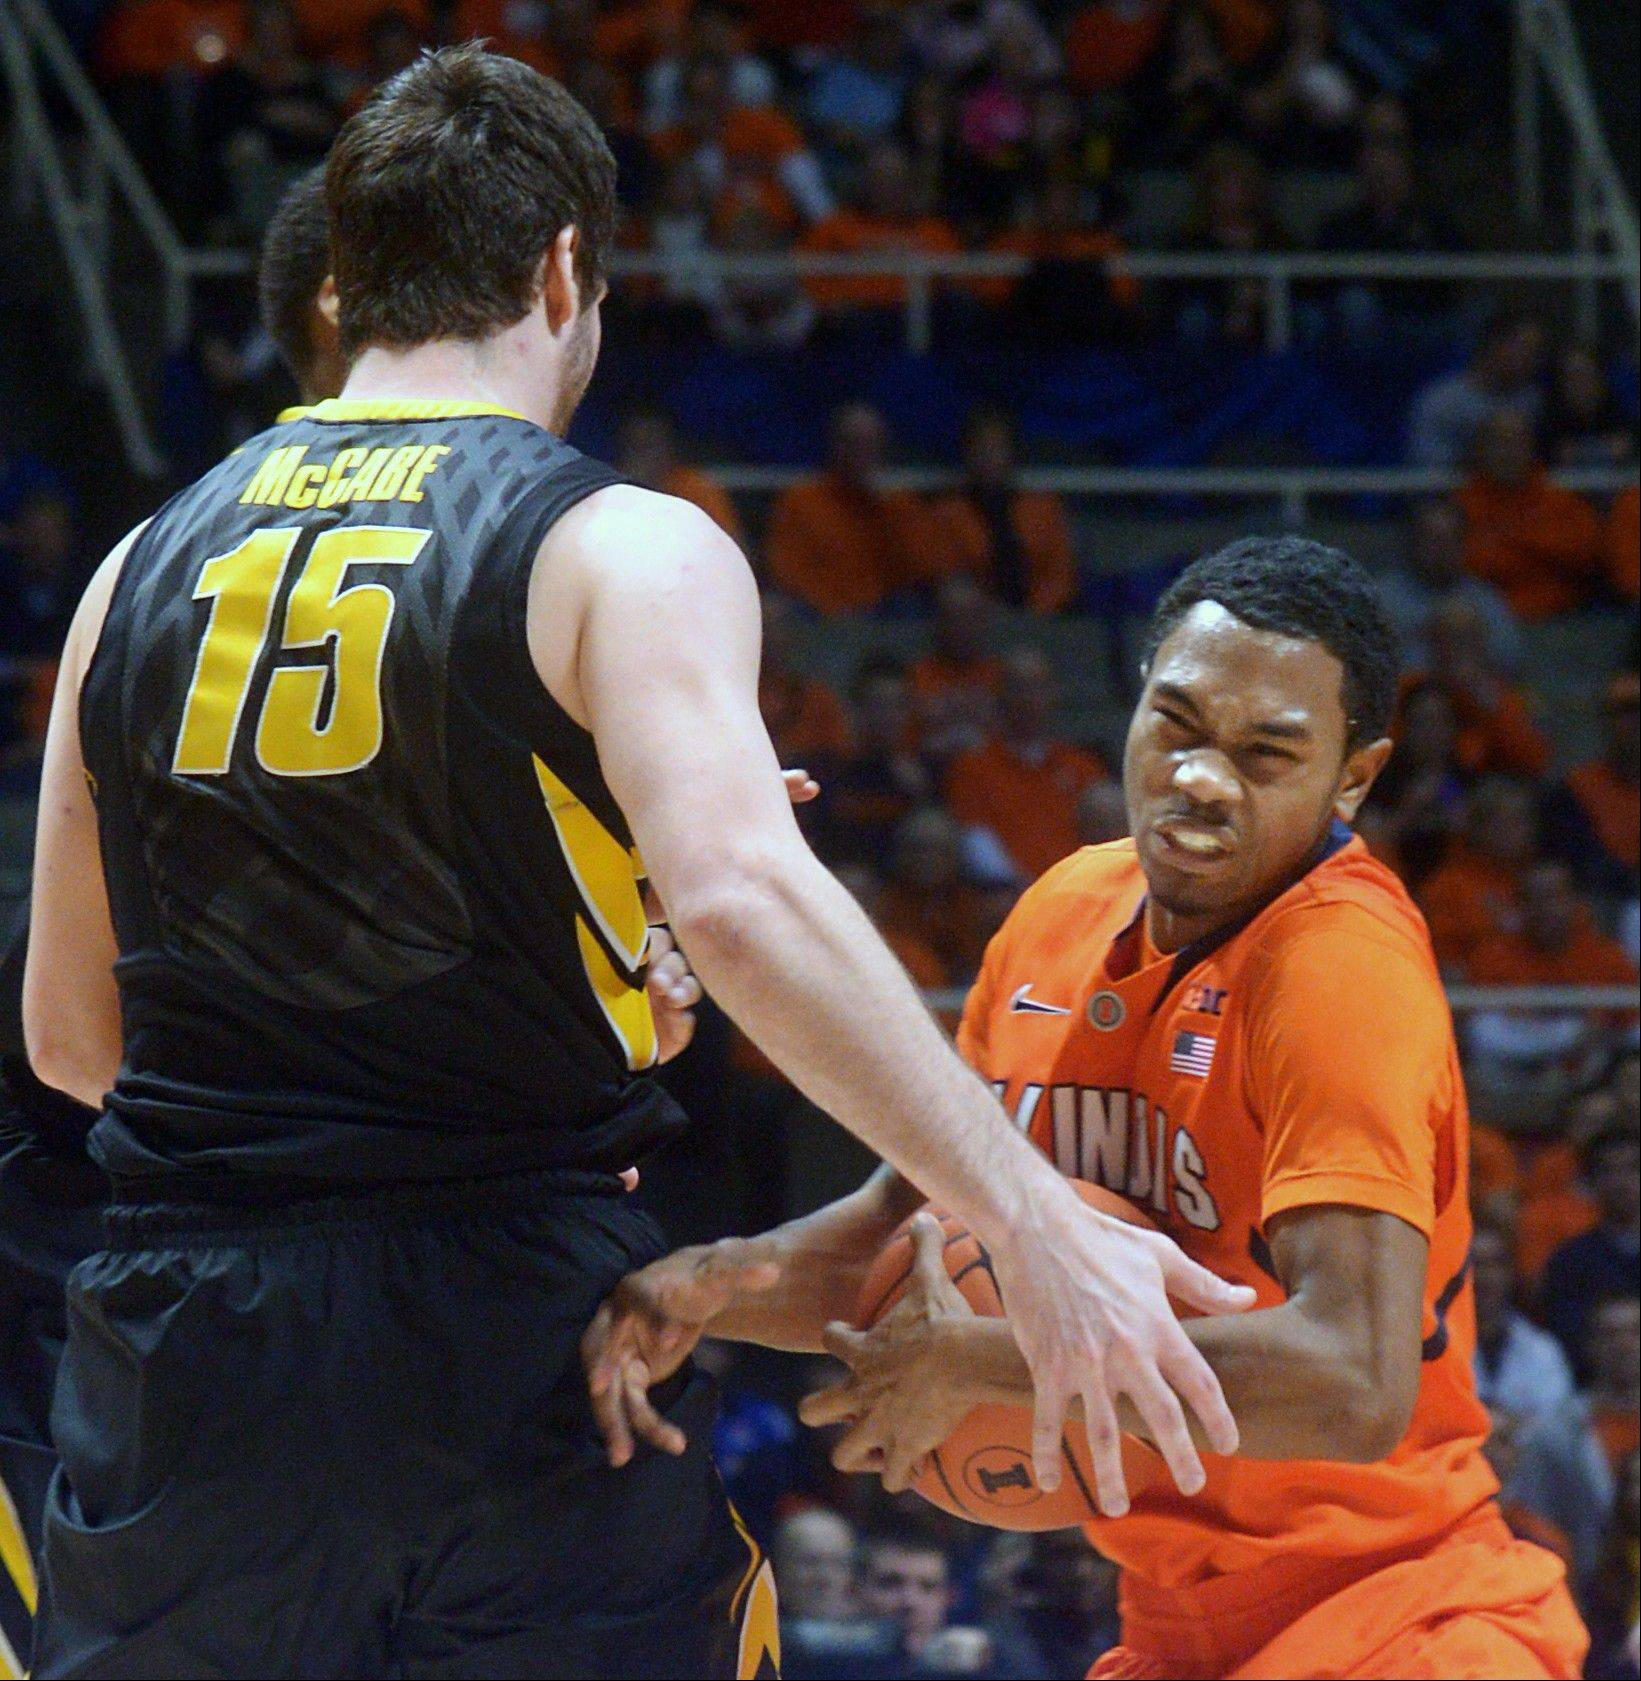 Illinois' Jaylon Tate (1) tries to keep the ball away from Iowa's Zach McCabe (15) during Saturday night's game in Champaign. The Illini lost 81-74.